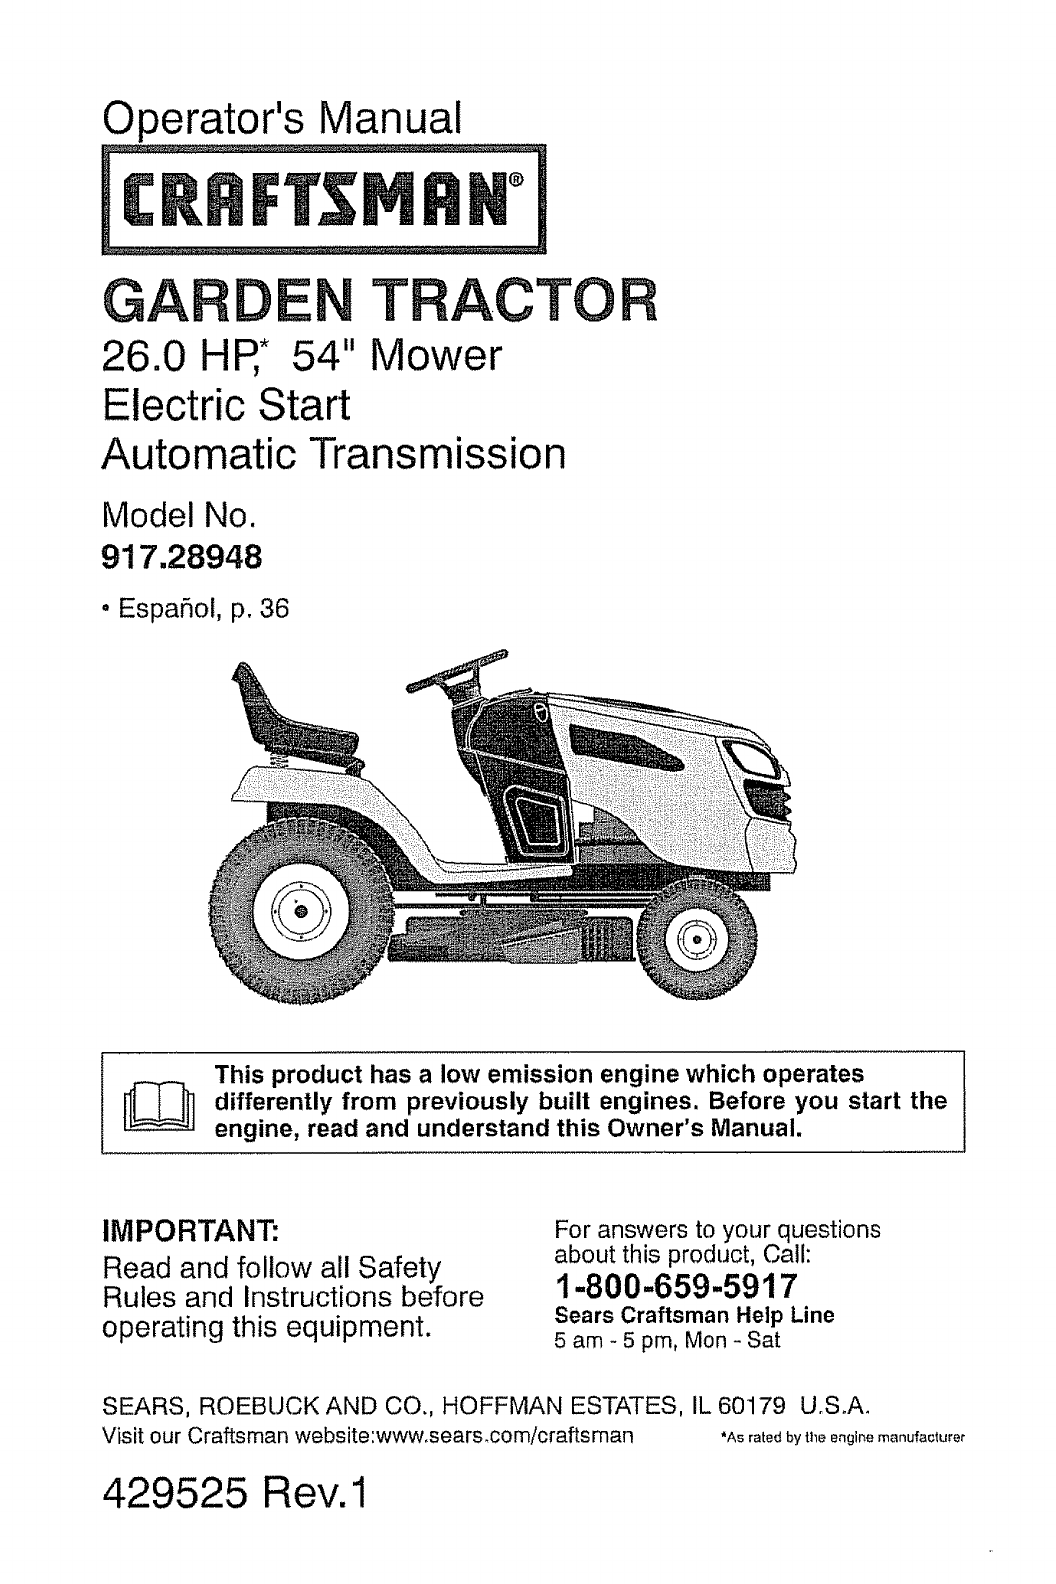 f42a5d10 c59b 44bc 8ef4 bdba46ffe3f7 bg1 craftsman lawn mower 28948 user guide manualsonline com craftsman ys 4500 wiring diagram at creativeand.co